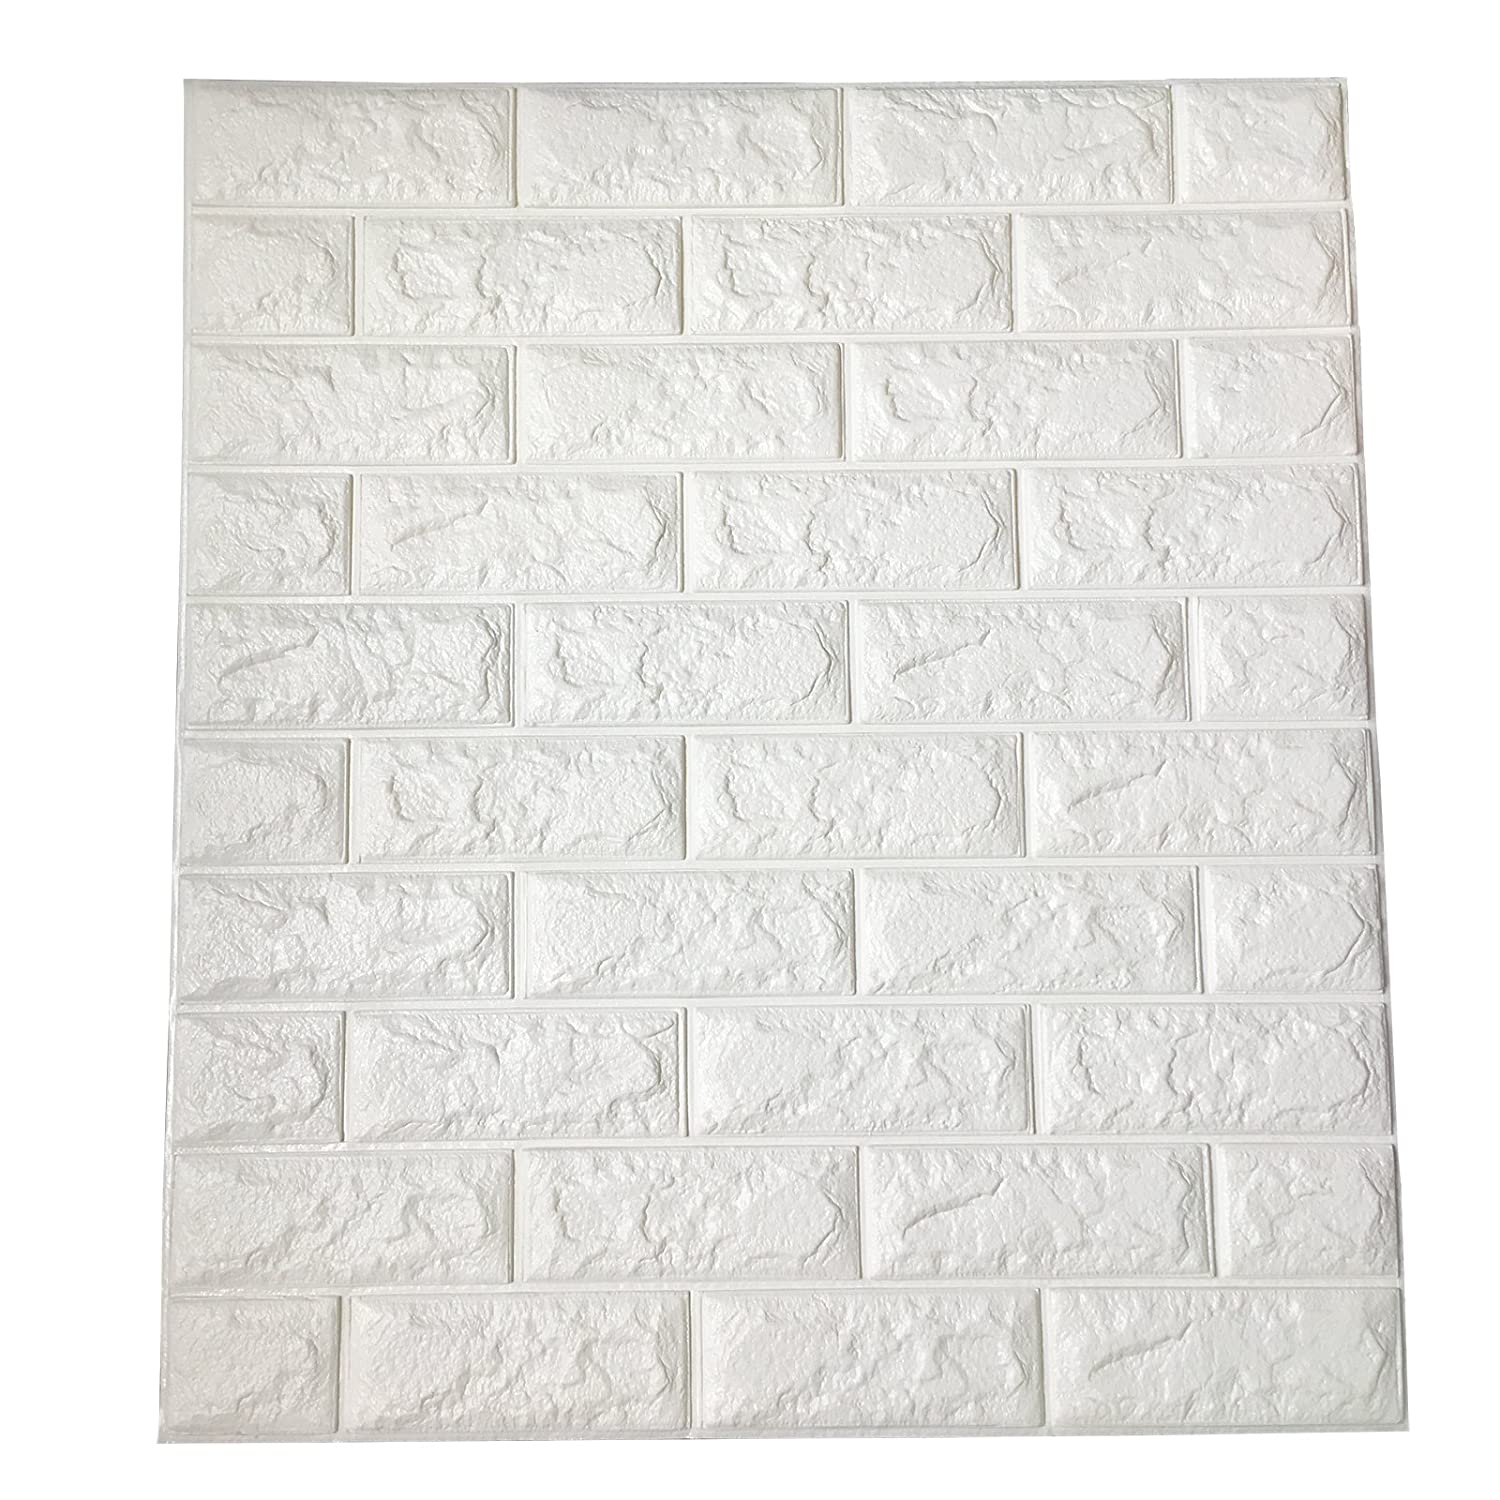 Art3d 29 Sq.Ft Self-Adhesive Foam Brick Wall Panels for Interior Wall Decor, White Brick Wallpaper, Pack of 5